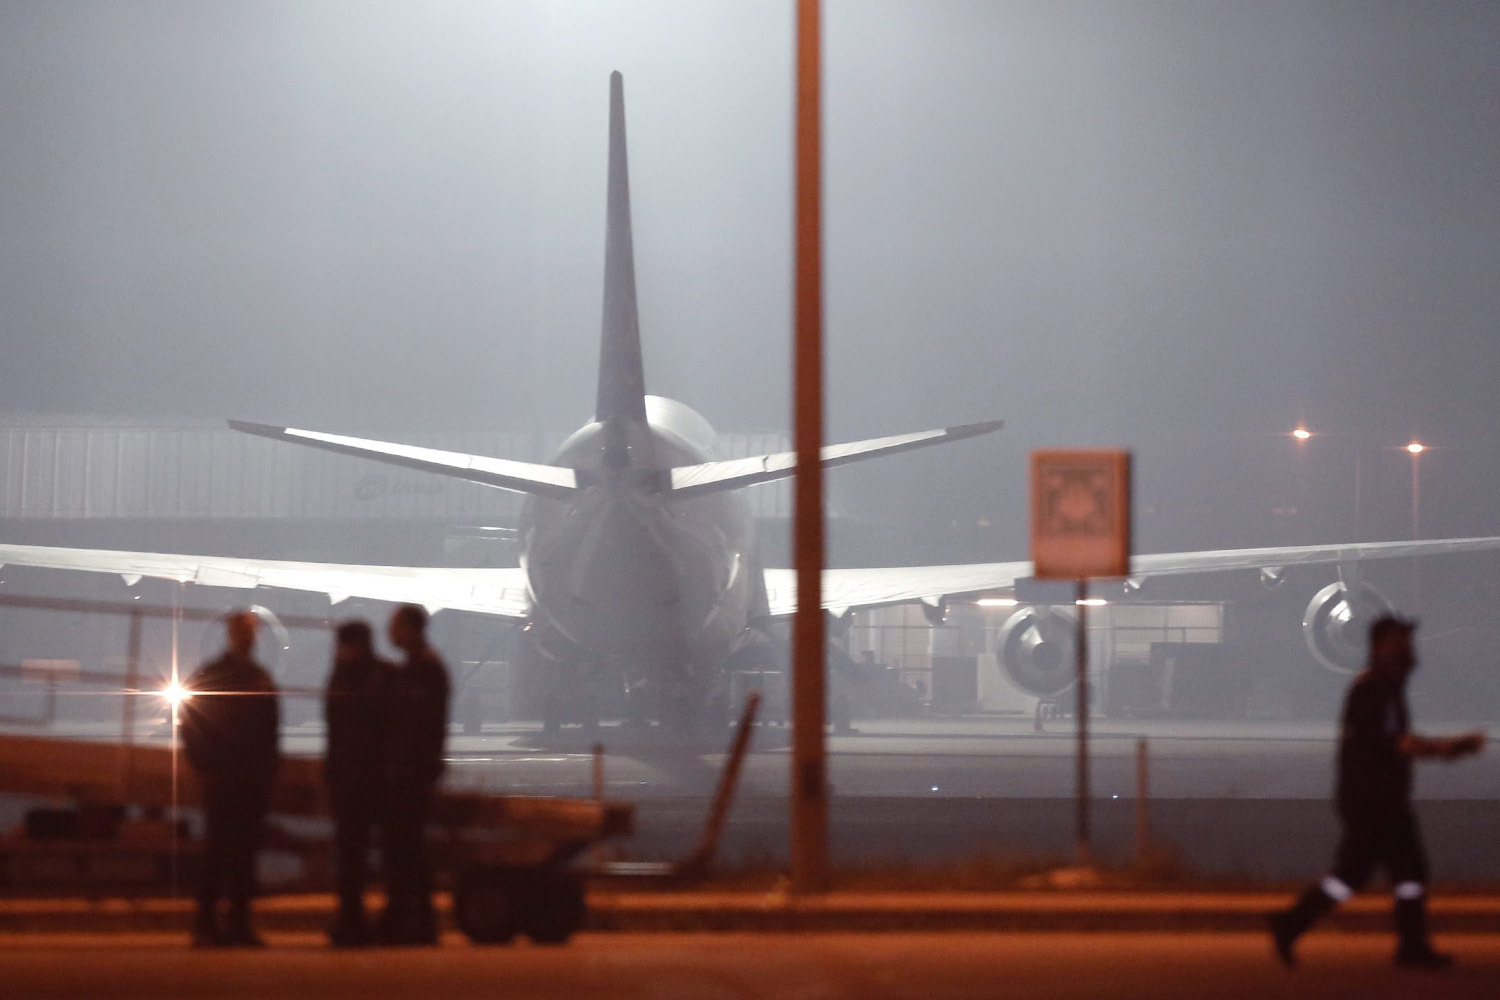 Turkish police forces arrive at the scene after hijacked airplane of a Turkish company Pegasus Airlines was landed at Sabiha Gokcen Airport in Istanbul, on Feb. 7, 2014.